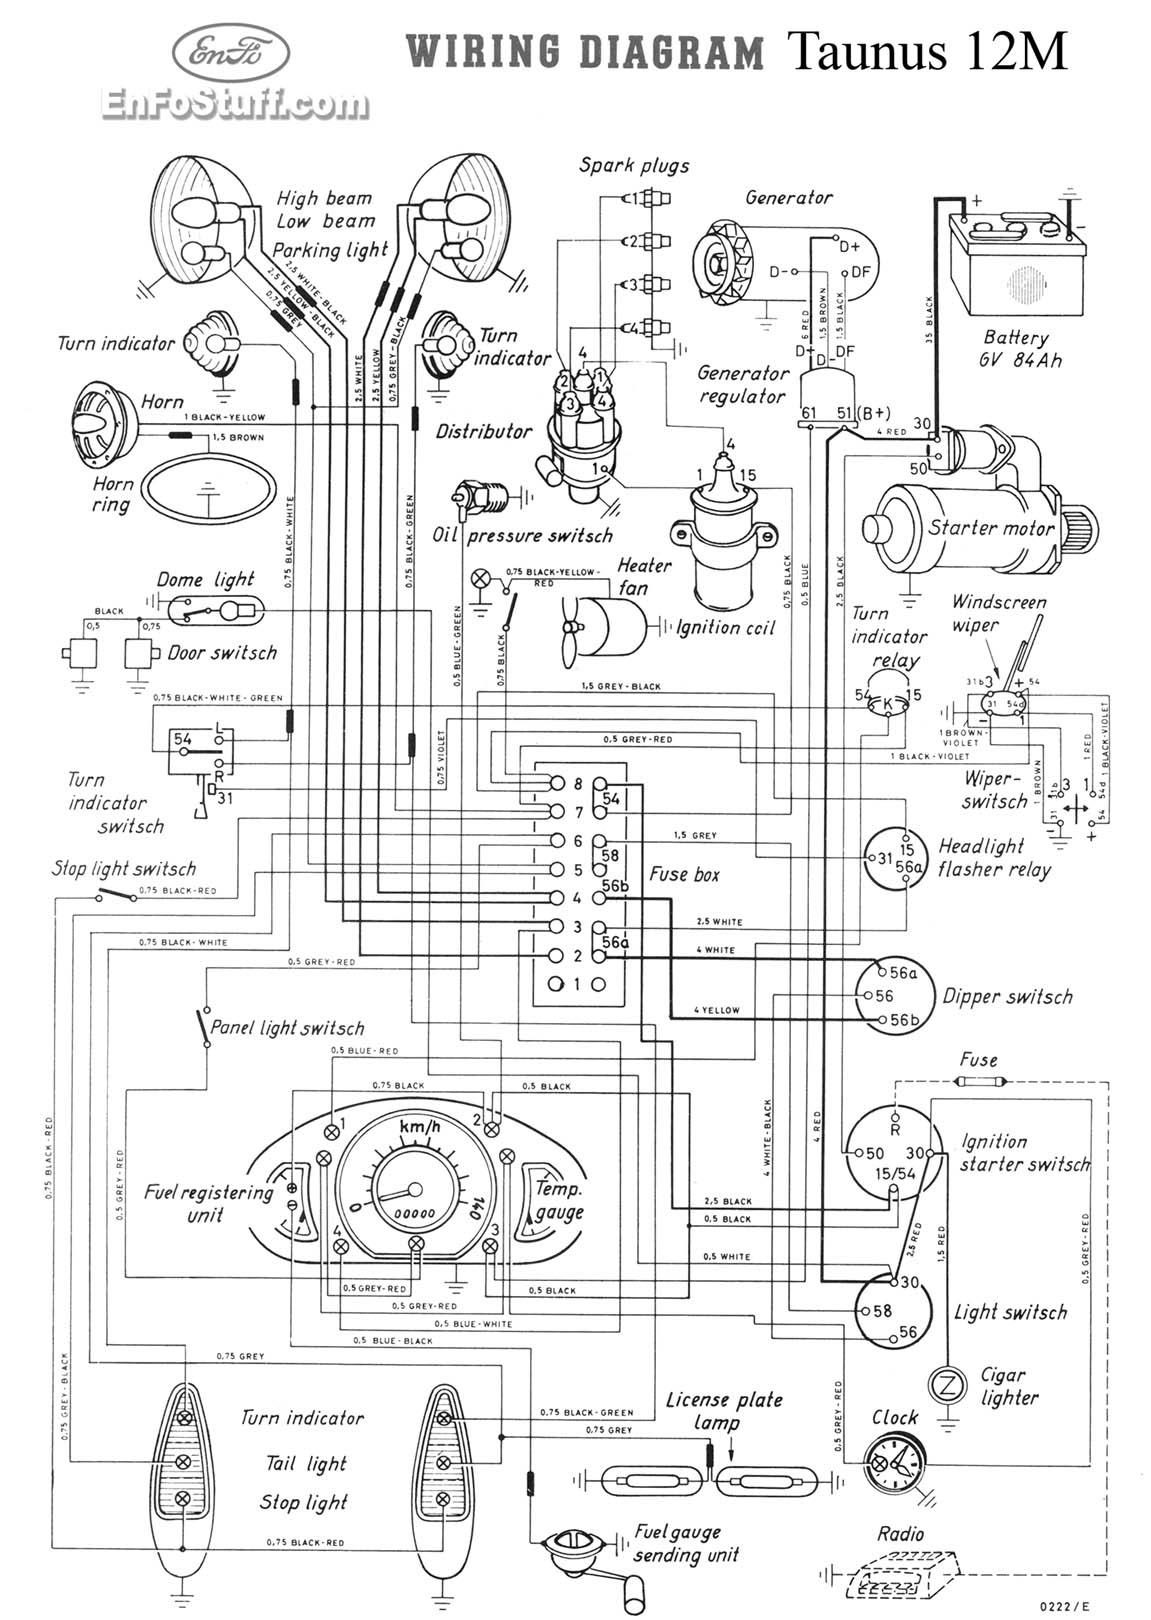 1953 ford wiring diagram pdf